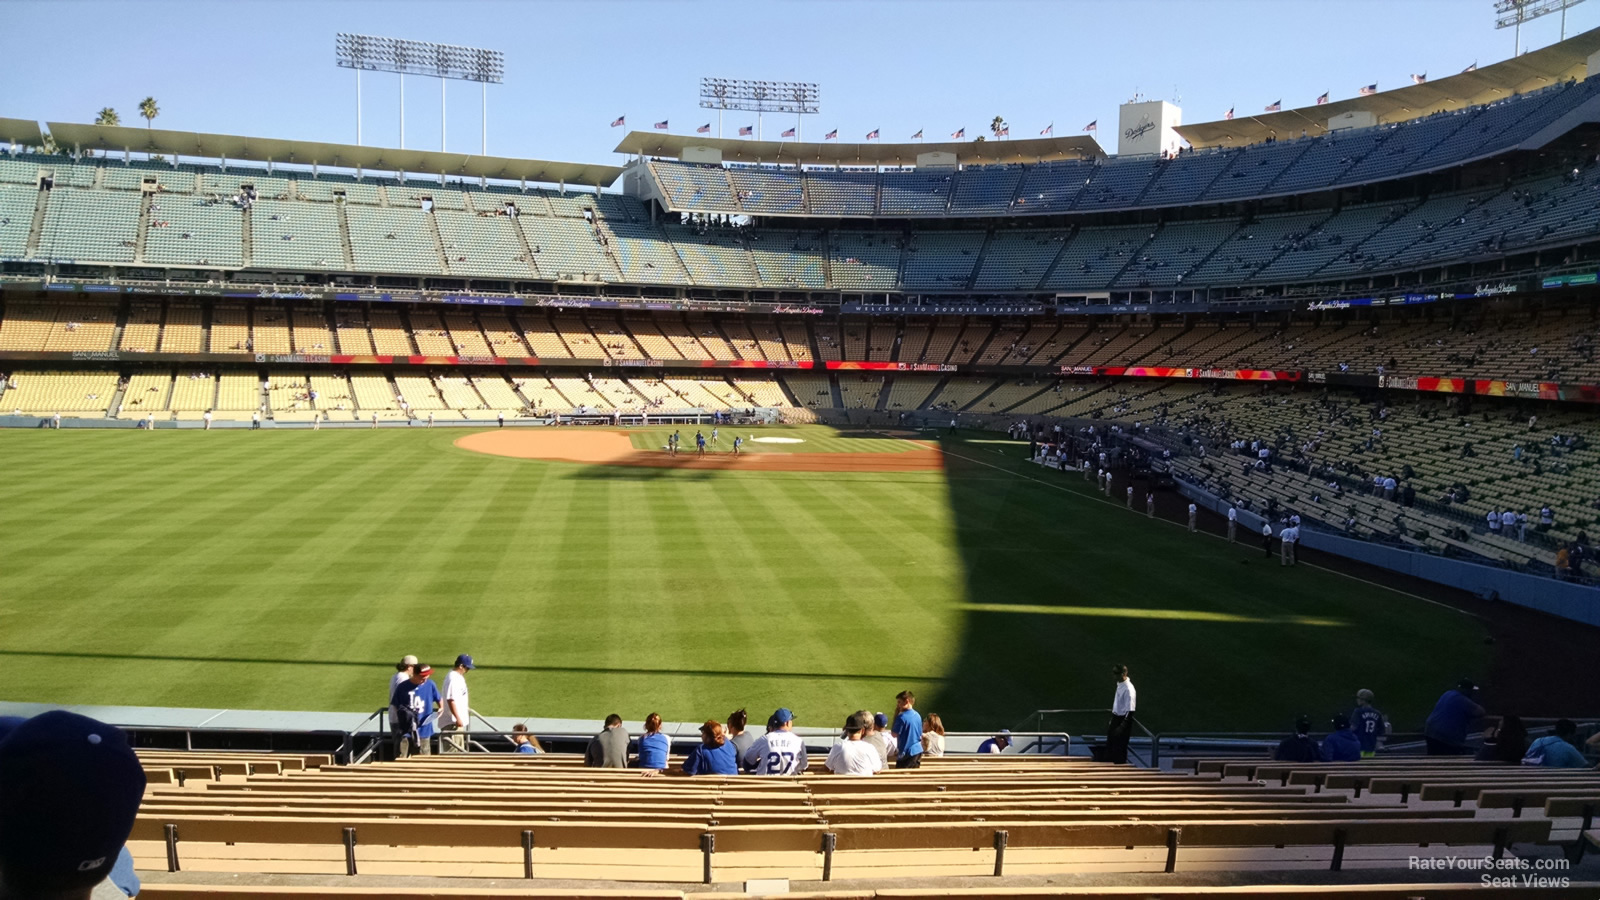 Dodger Stadium Section 303 - RateYourSeats.com